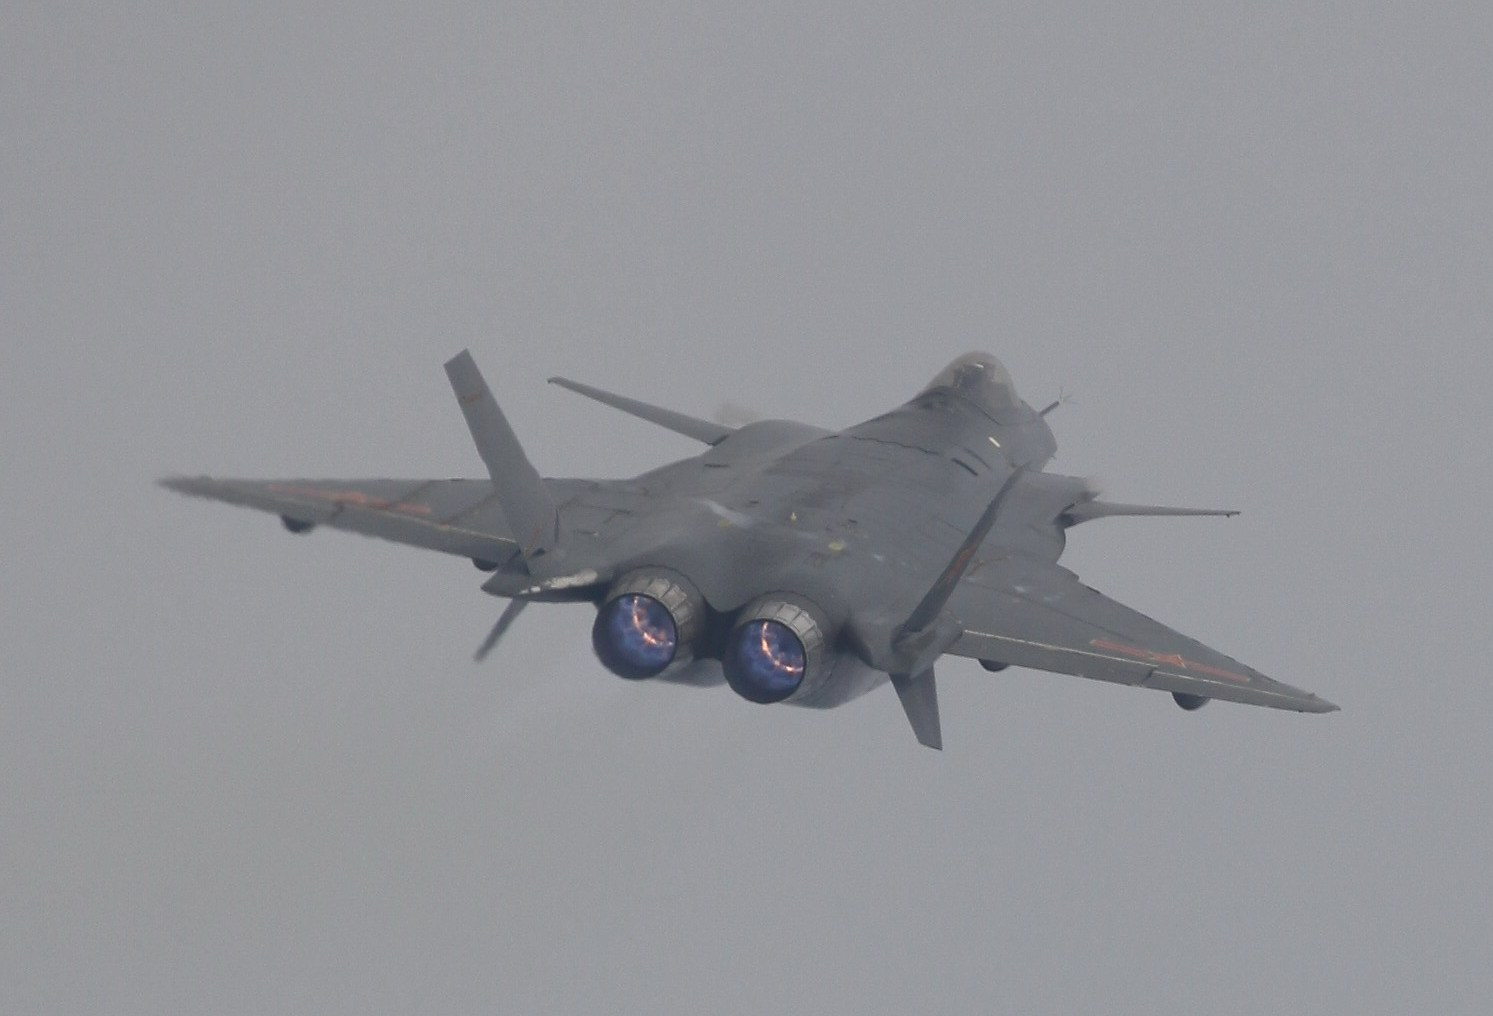 J-20 Mighty Dragon Chengdu J-20 fifth generation stealth, twin-engine fighter aircraft prototype Peoples Liberation Army Air Force OPERATIONAL weapons aam bvr missile ls pgm gps plaaf (2)